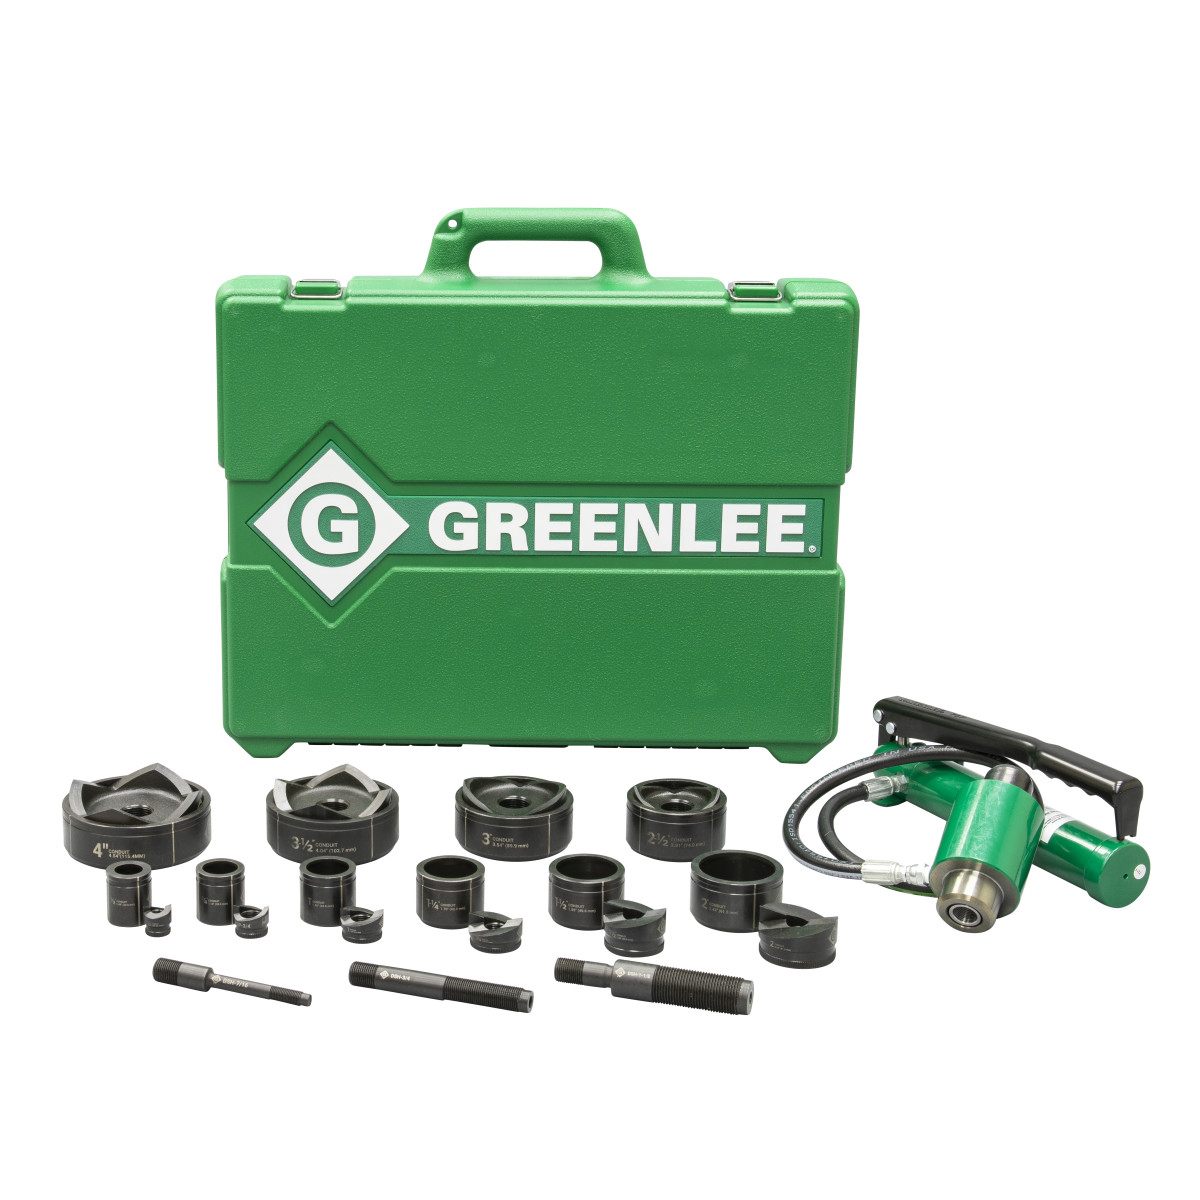 "Greenlee 7310SB Punch Set Hyd Driver - 1/2""X4"""